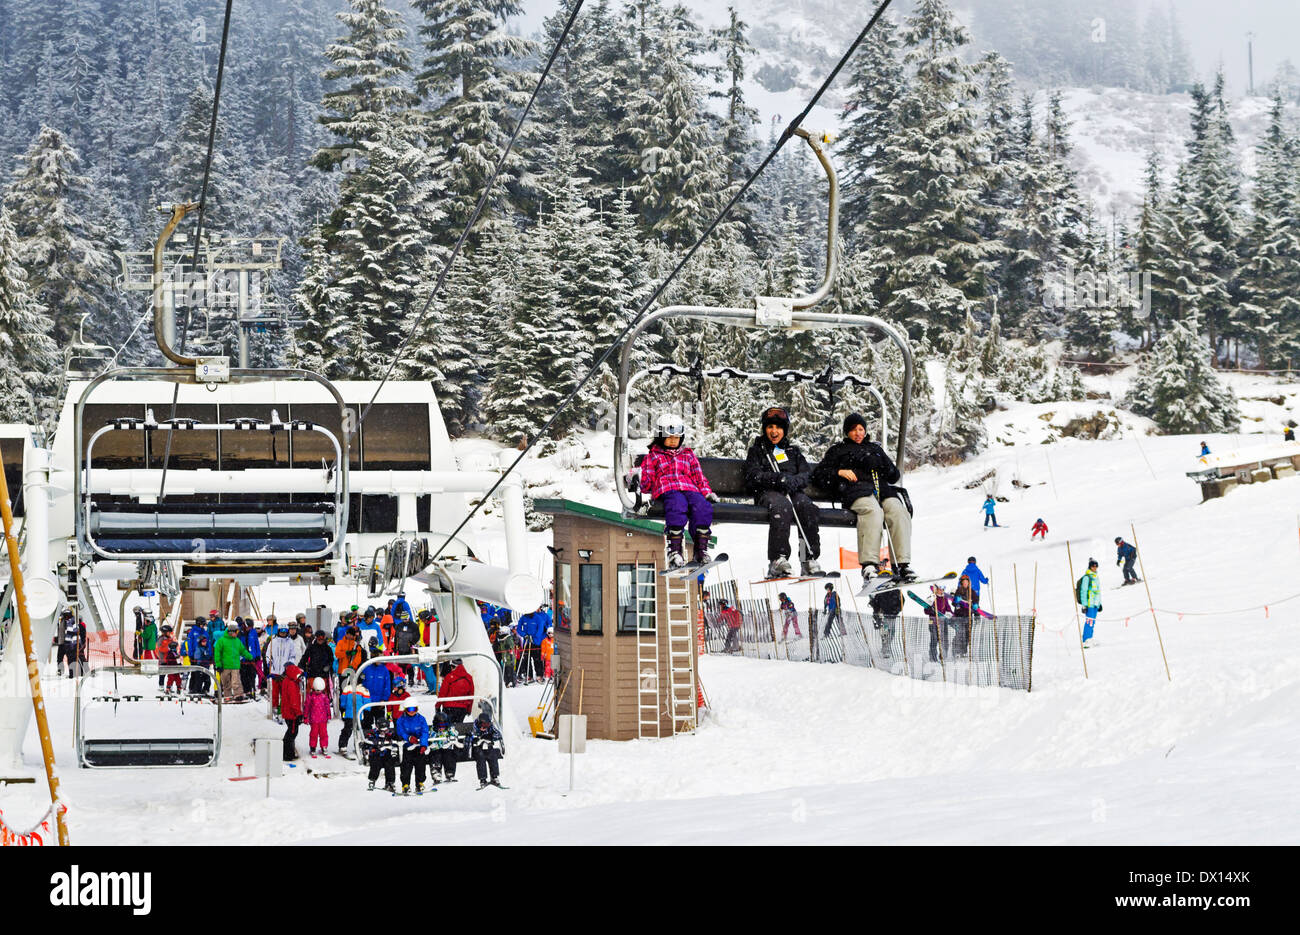 skiiers-on-the-ski-lift-on-grouse-mounta